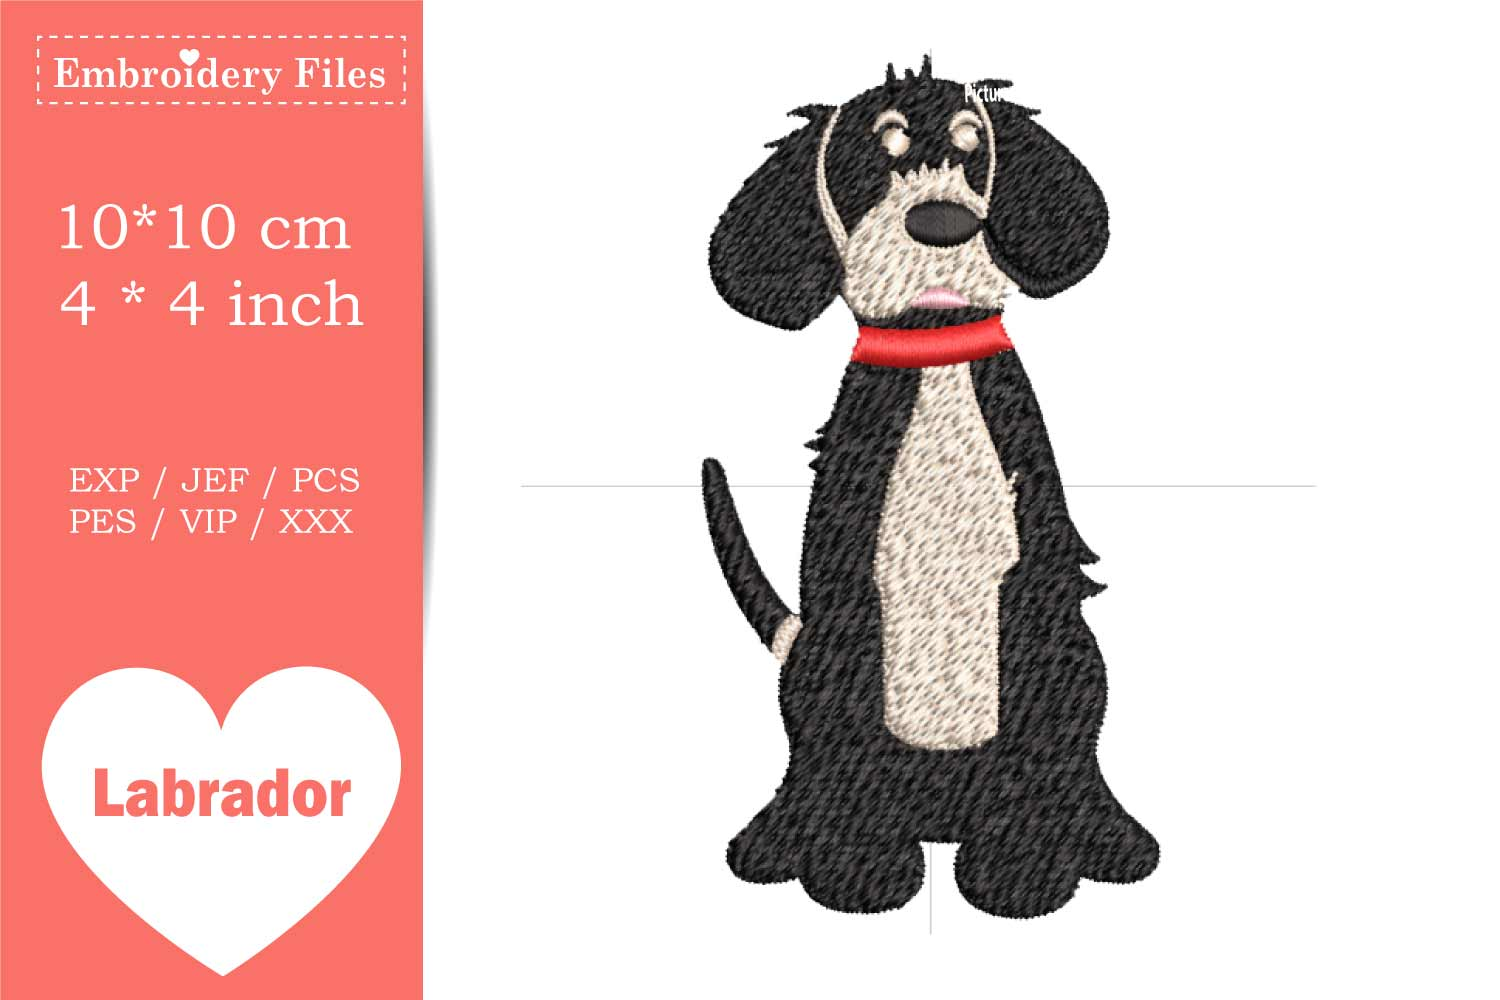 Dogs - Mini Bundle - Embroidery Files example image 3